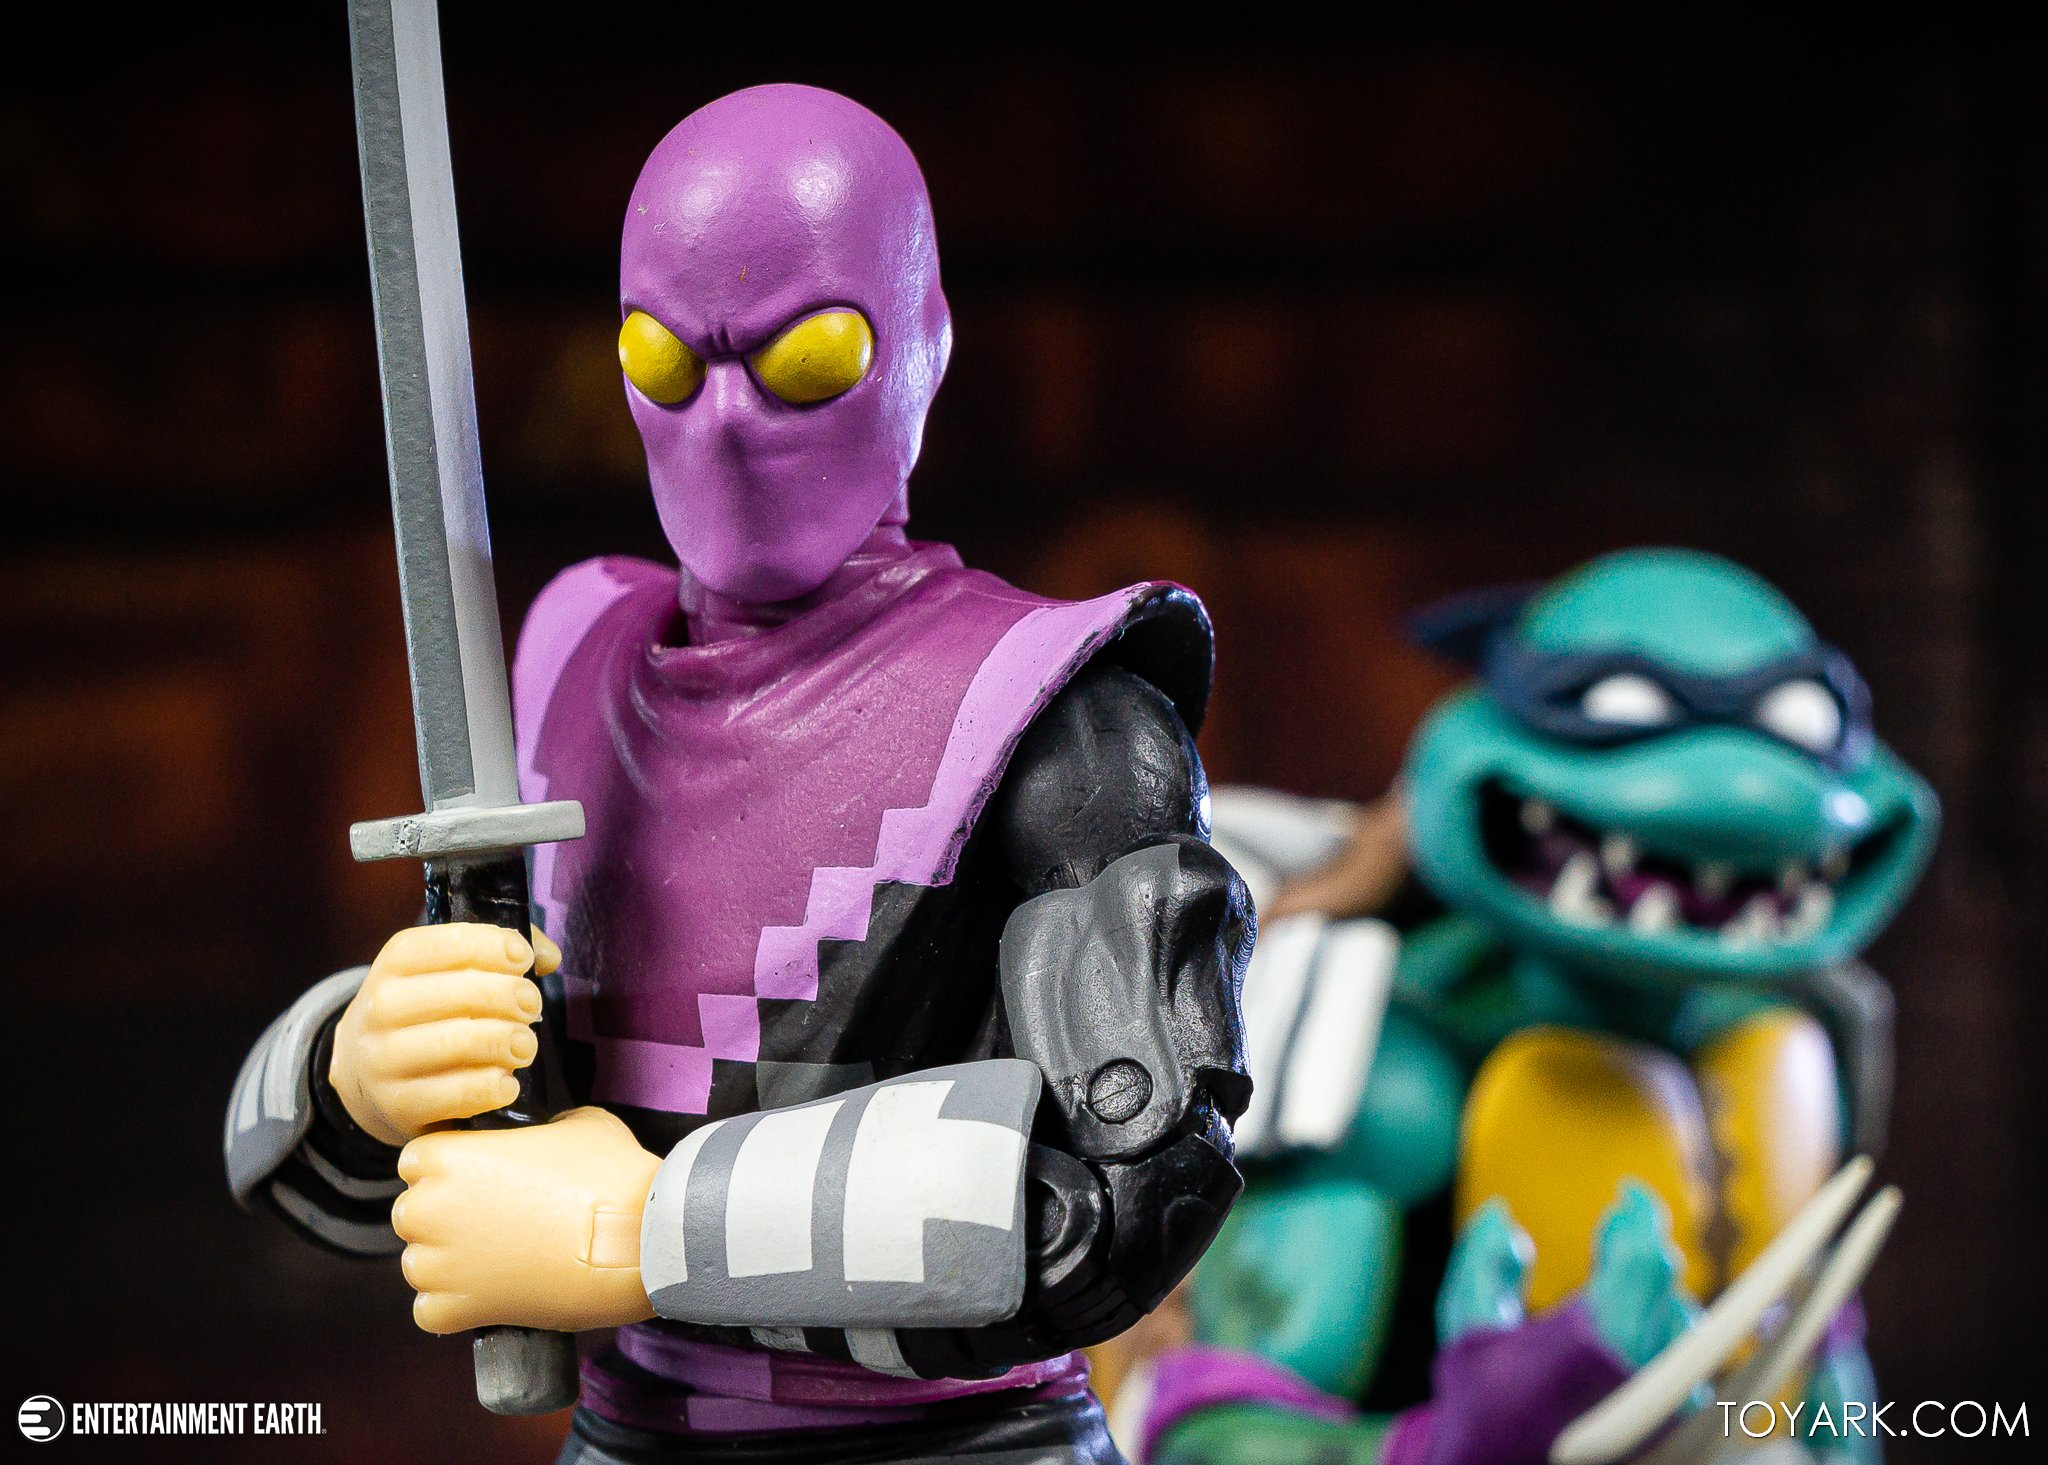 https://news.toyark.com/wp-content/uploads/sites/4/2020/06/NECA-TMNT-Turtles-In-Time-S1-059.jpg